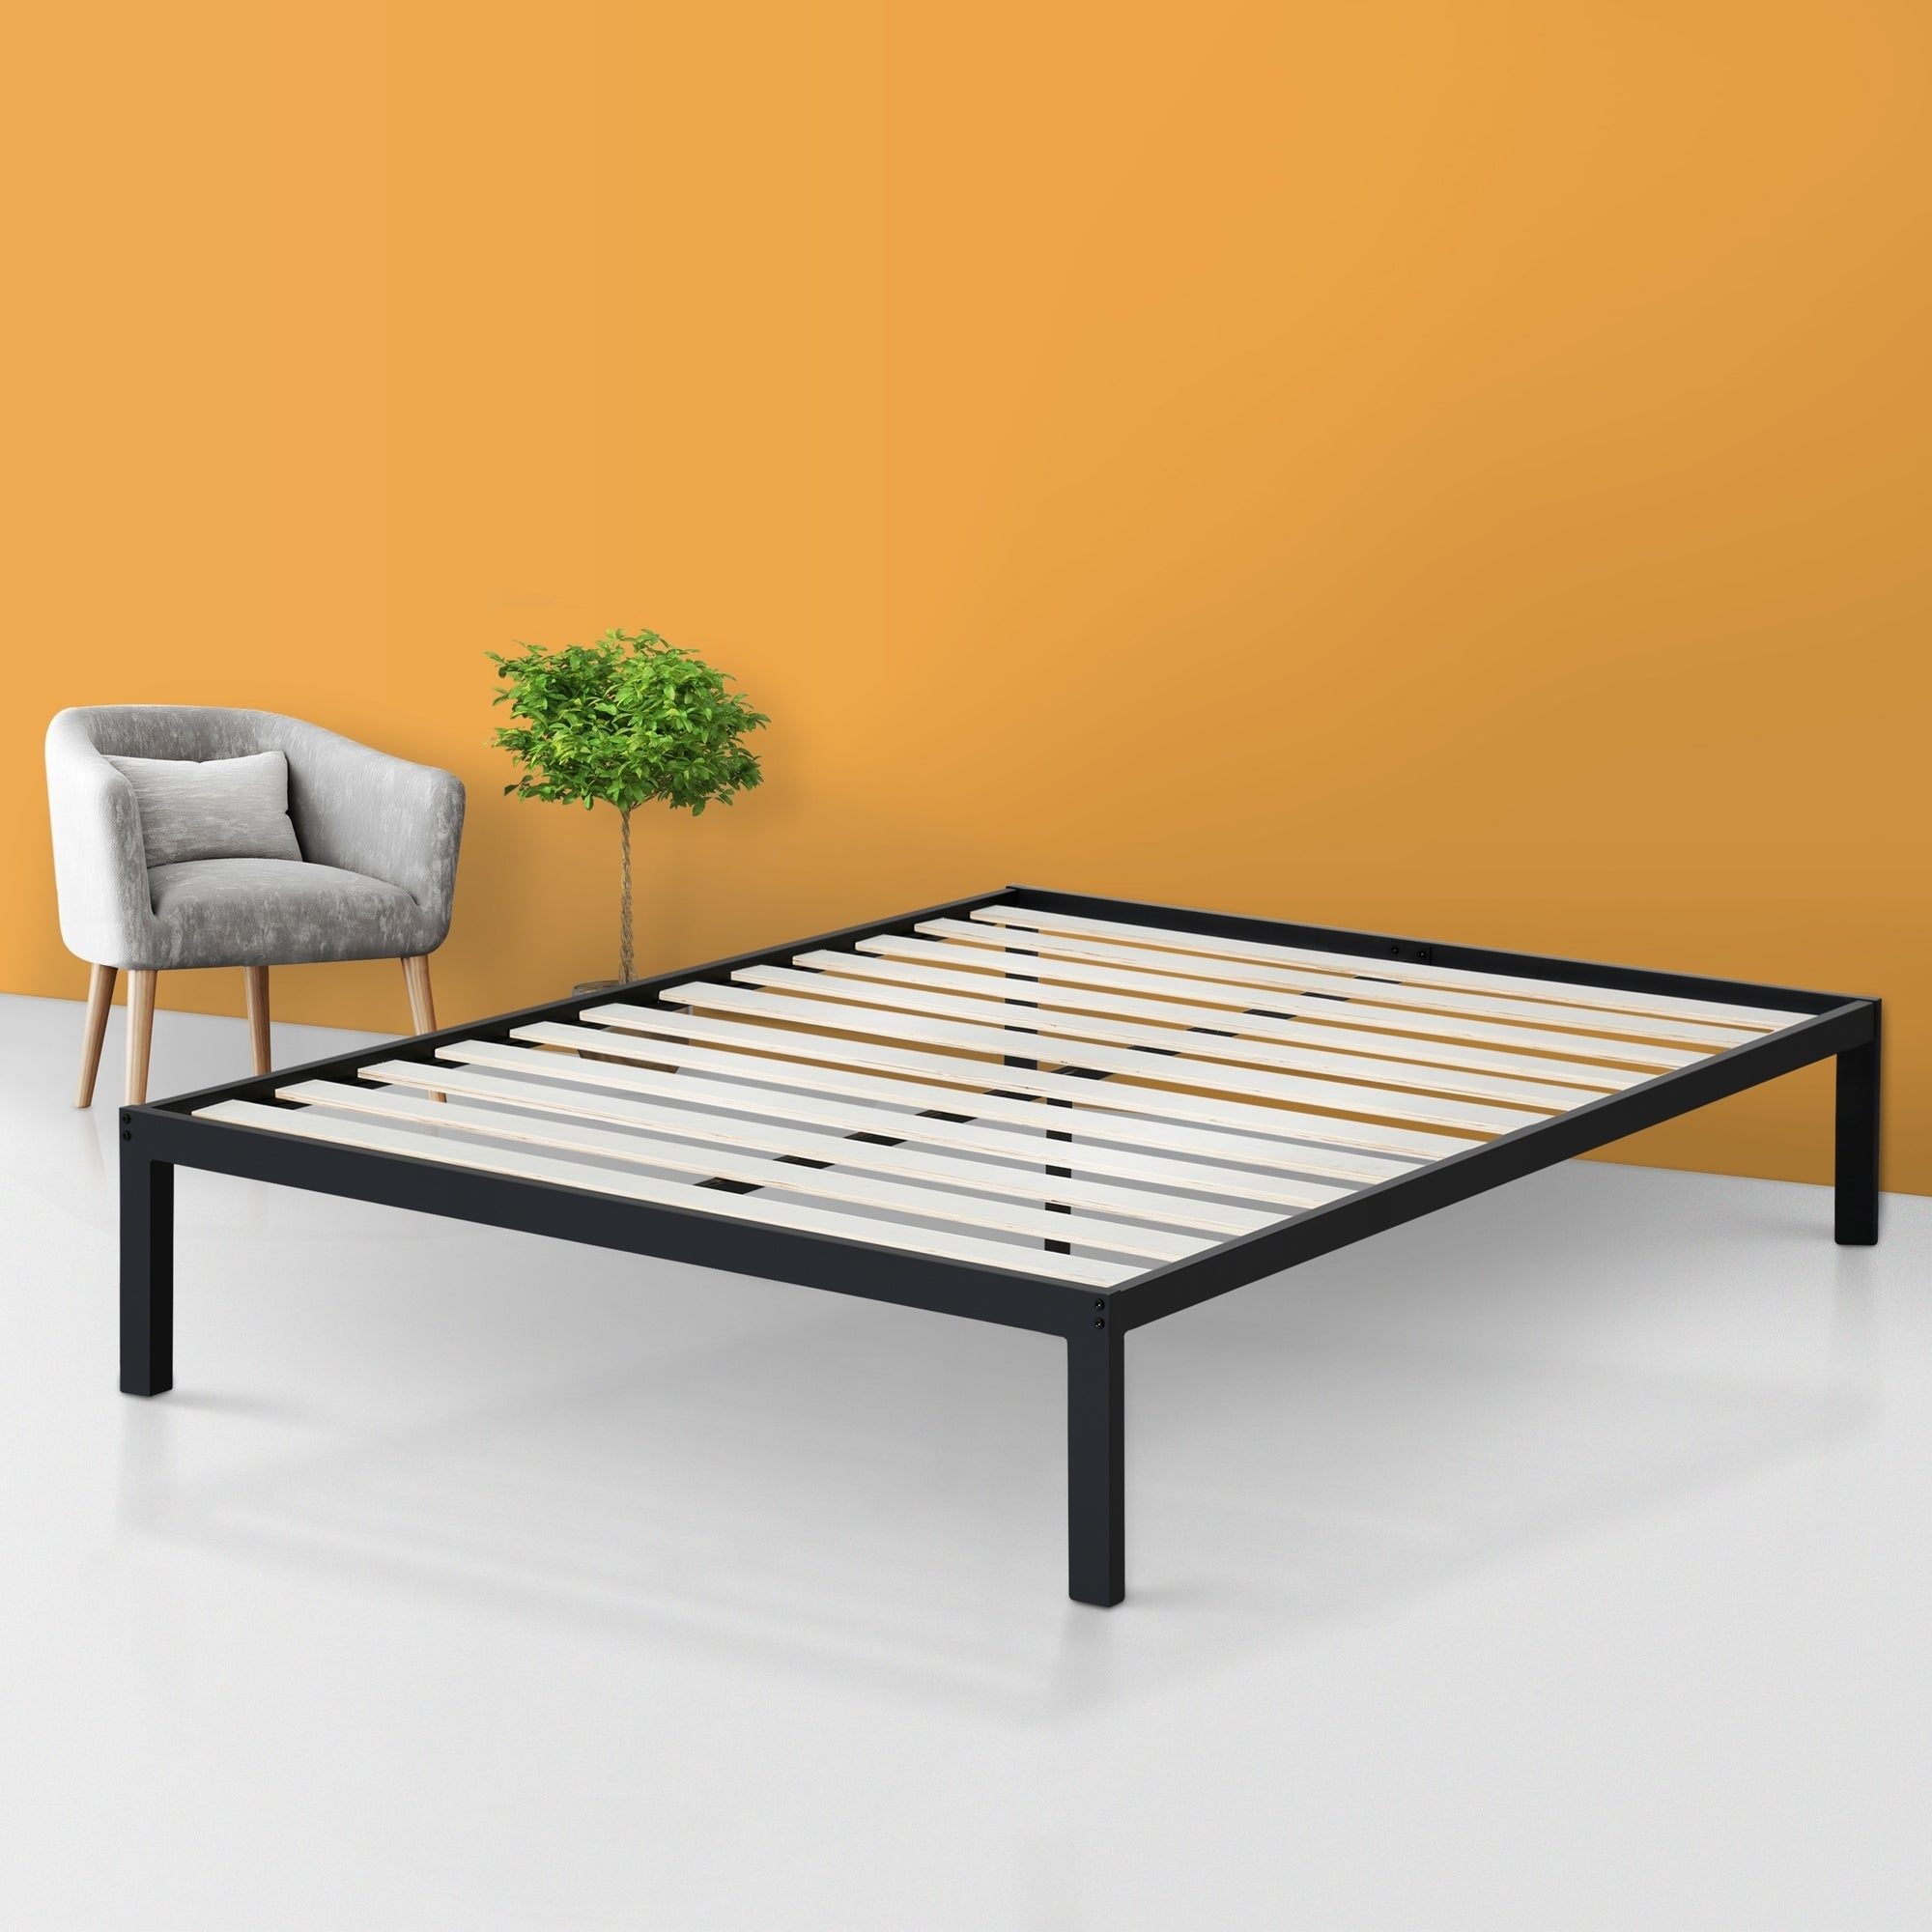 Sleeplanner 14 Inch Platform Metal Bed Frame Wooden Slat Support Full Size